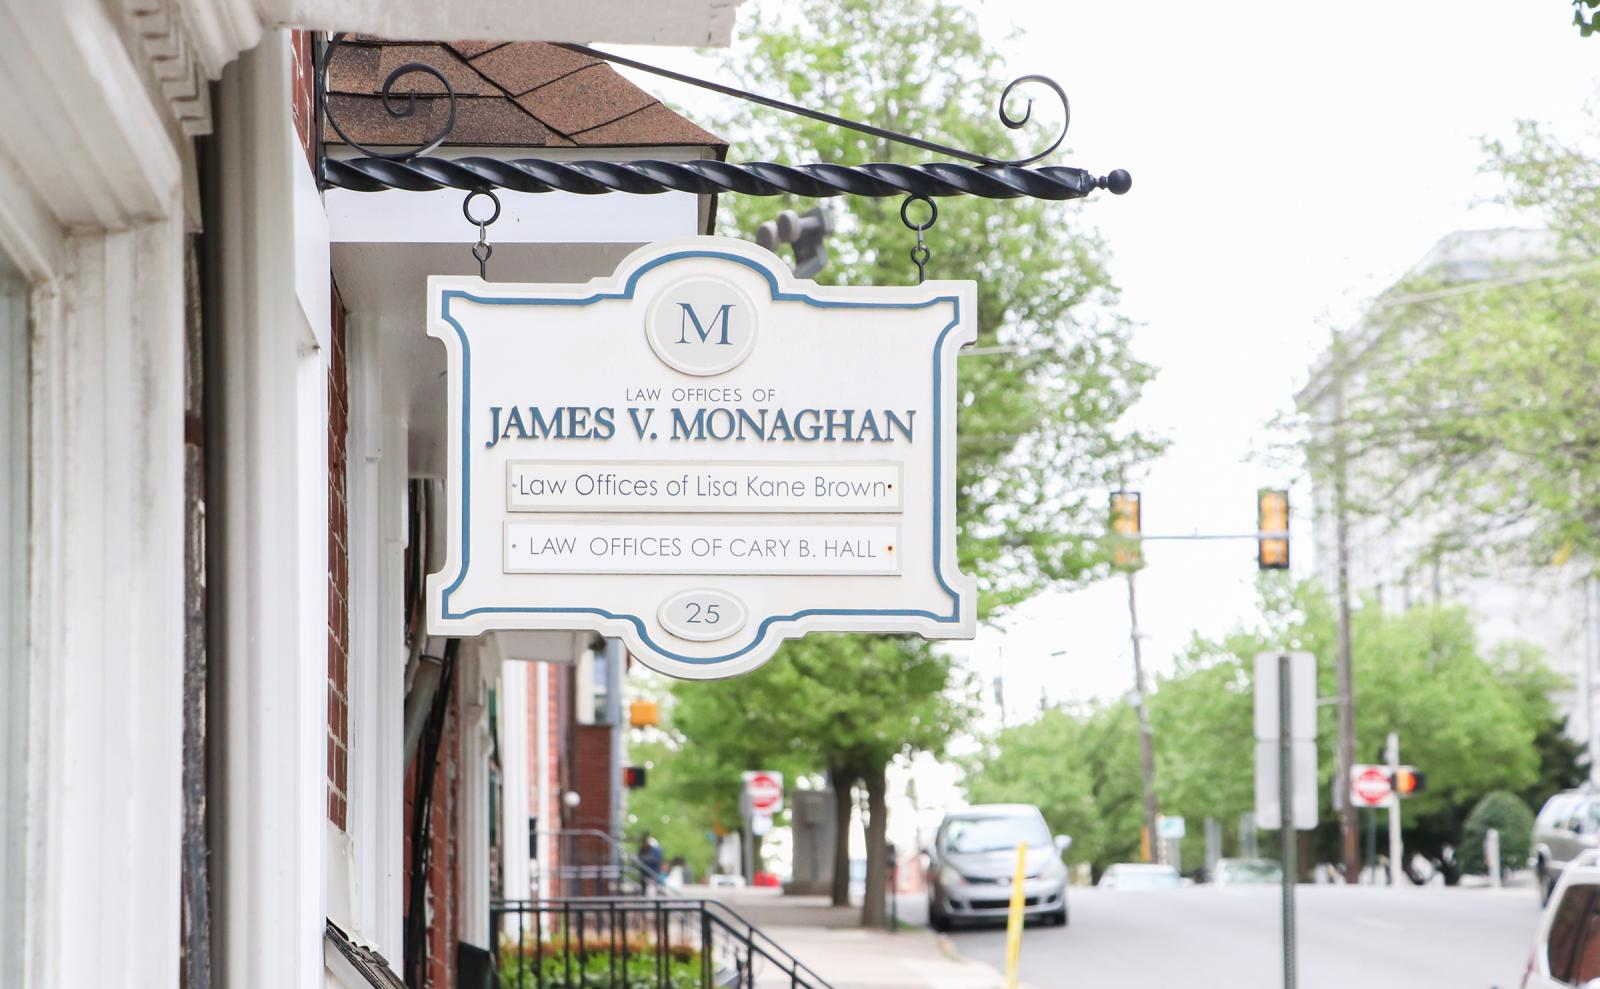 Law Offices of James V. Monaghan Building Sign